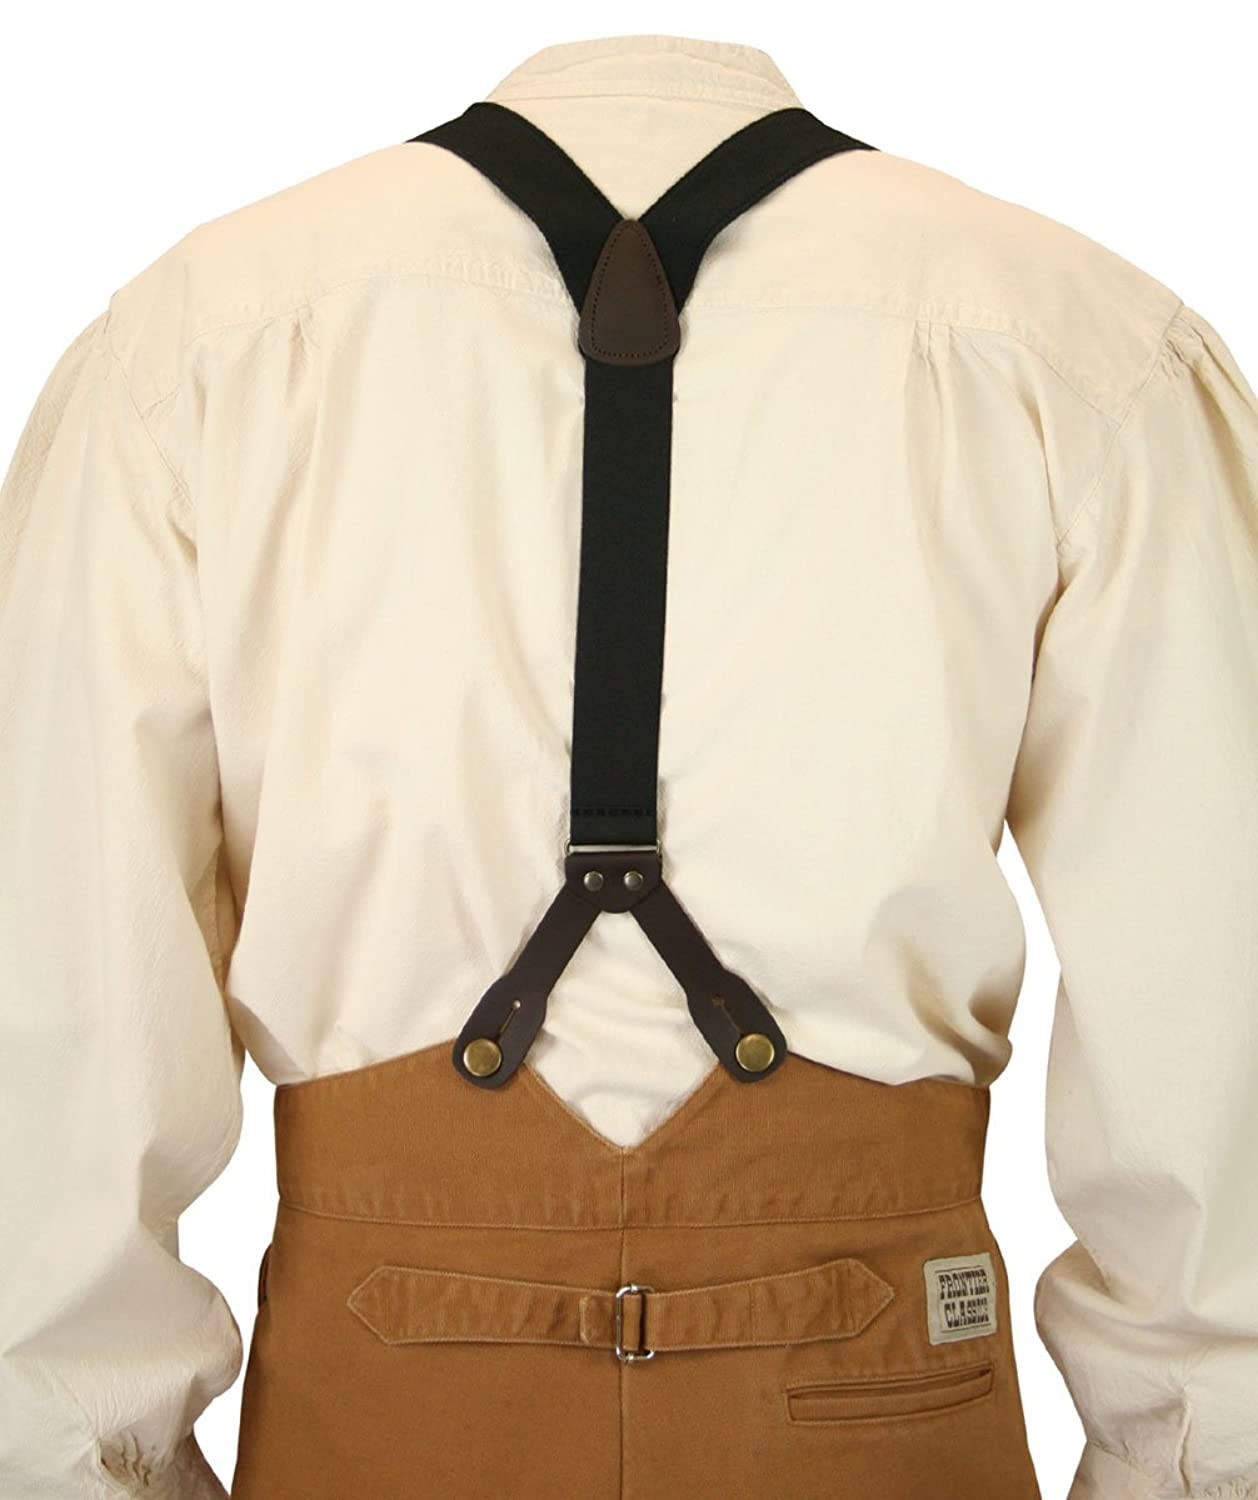 Victorian Men's Cane, Pocket Watch, Spats, Suspenders Historical Emporium Mens Canvas Stagecoach Y-Back Suspenders $27.95 AT vintagedancer.com